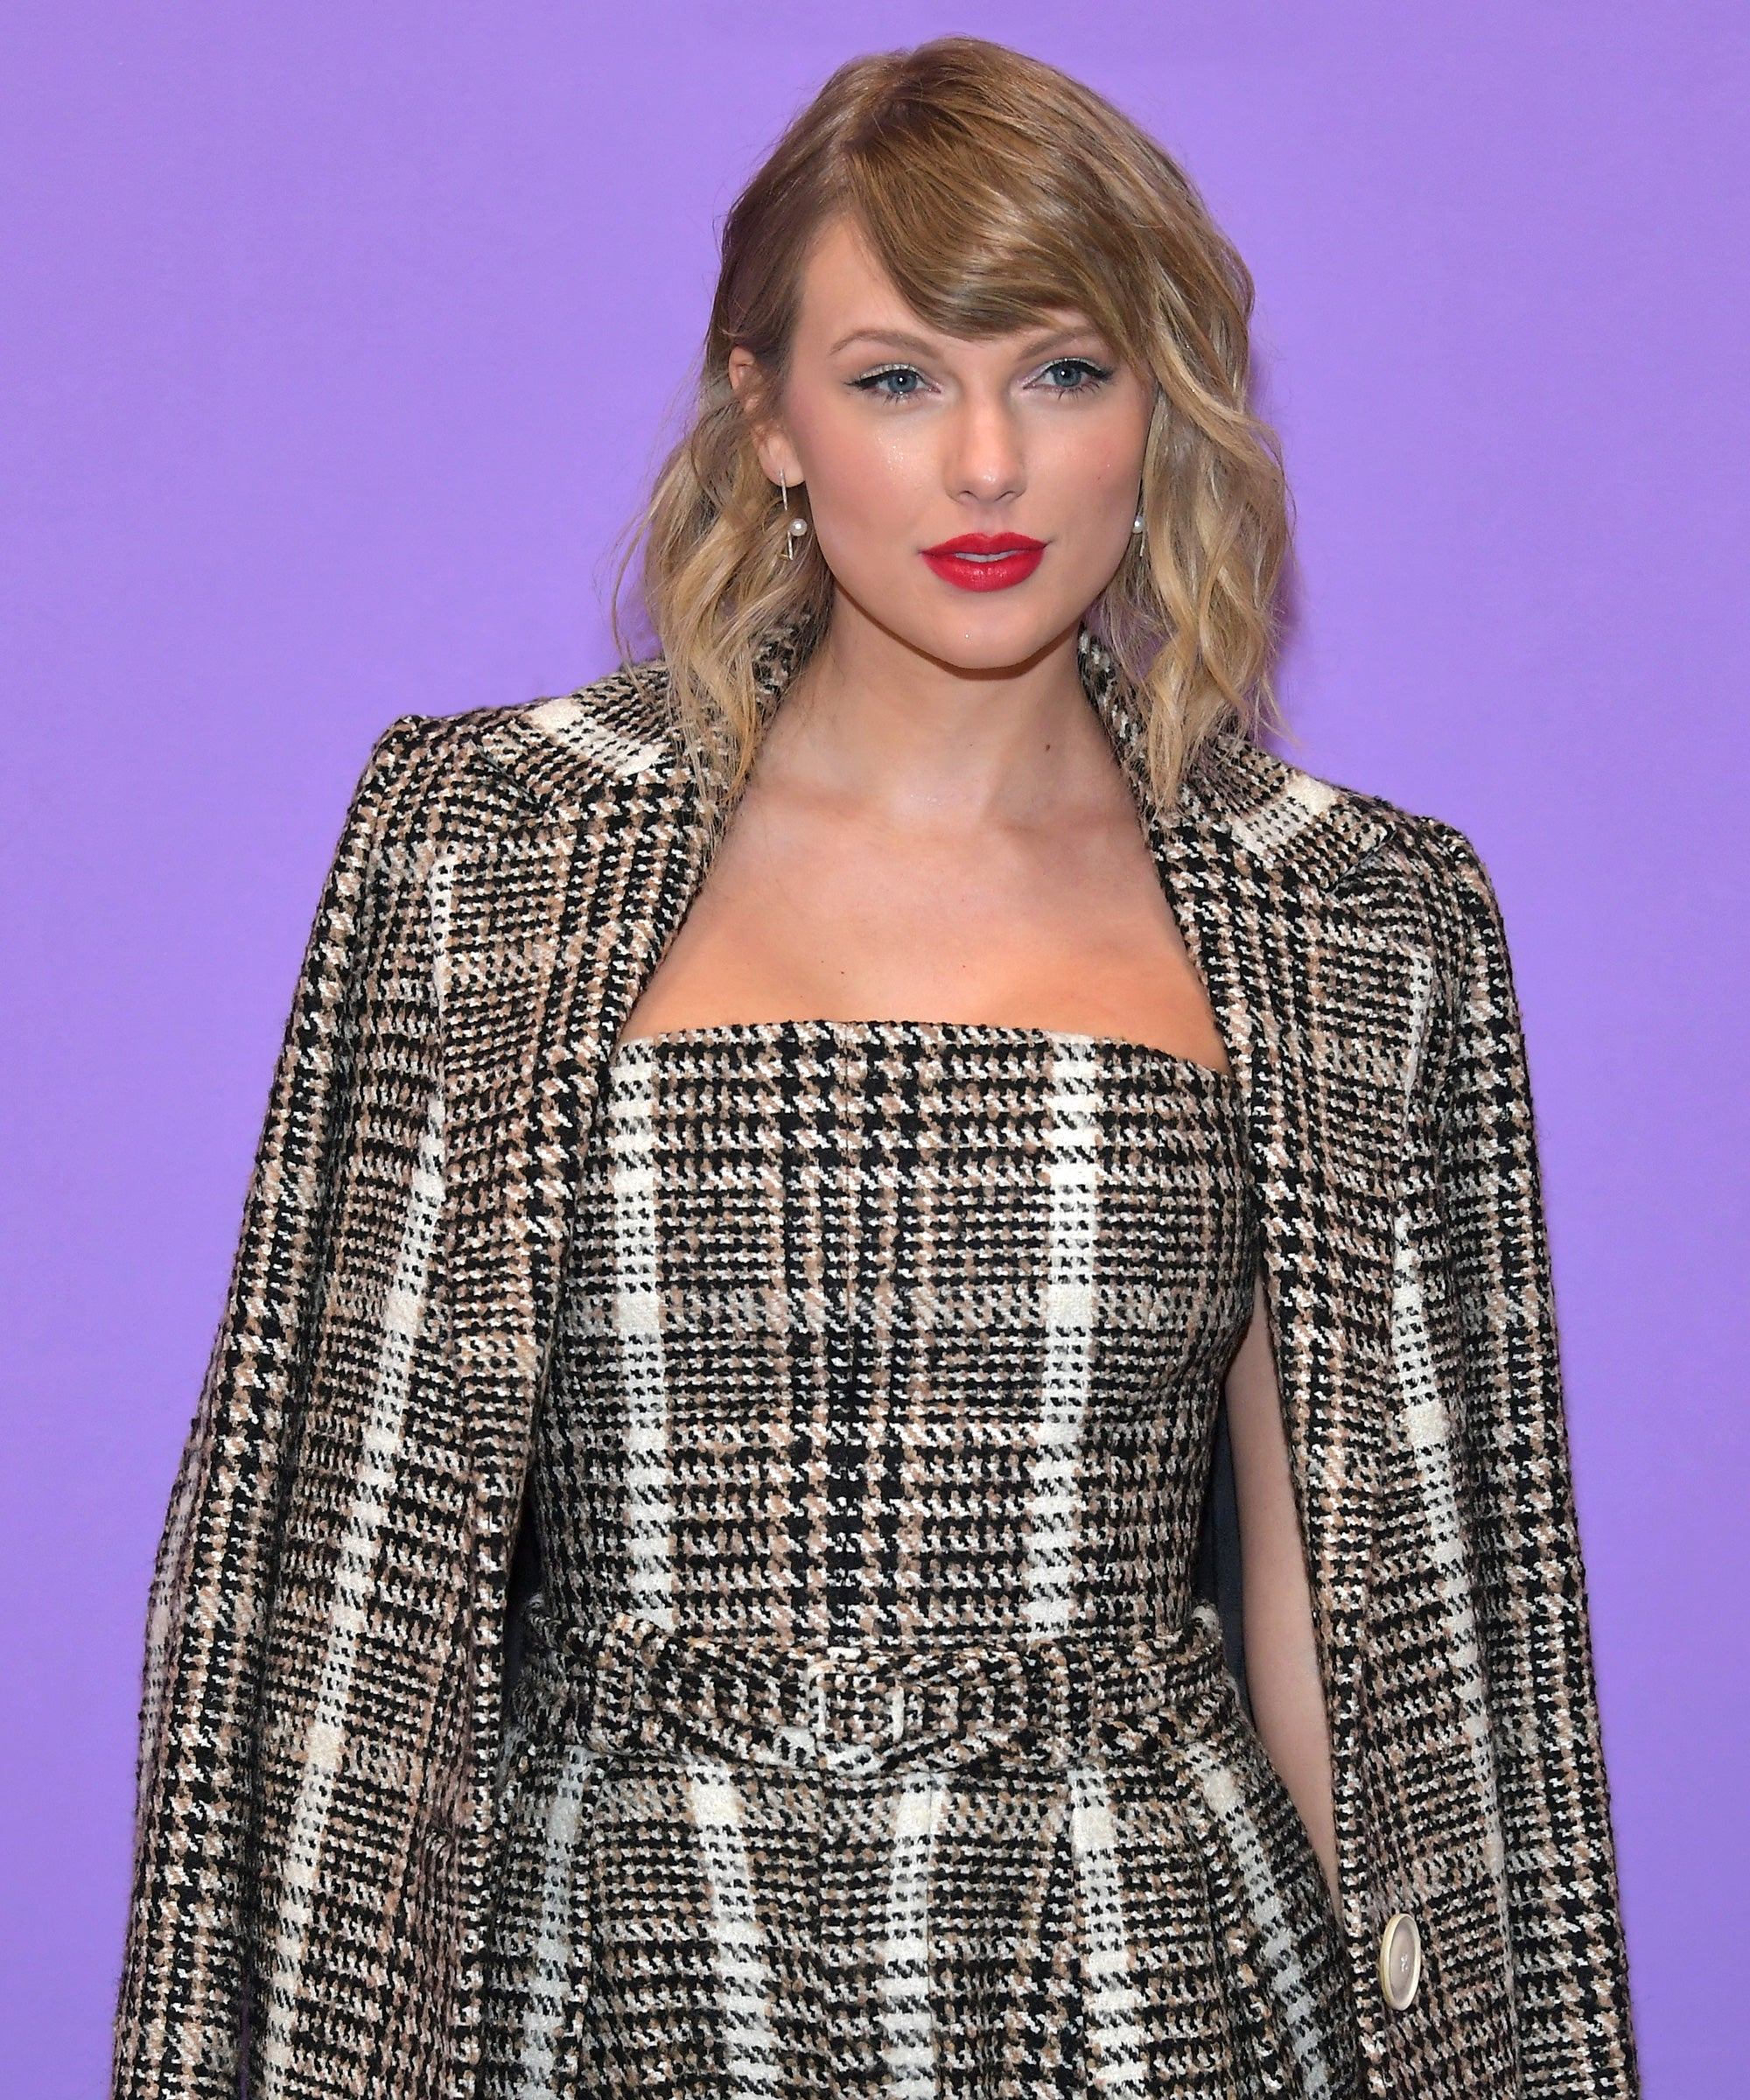 Taylor Swift Cottagecore Halloween Costume For 2020